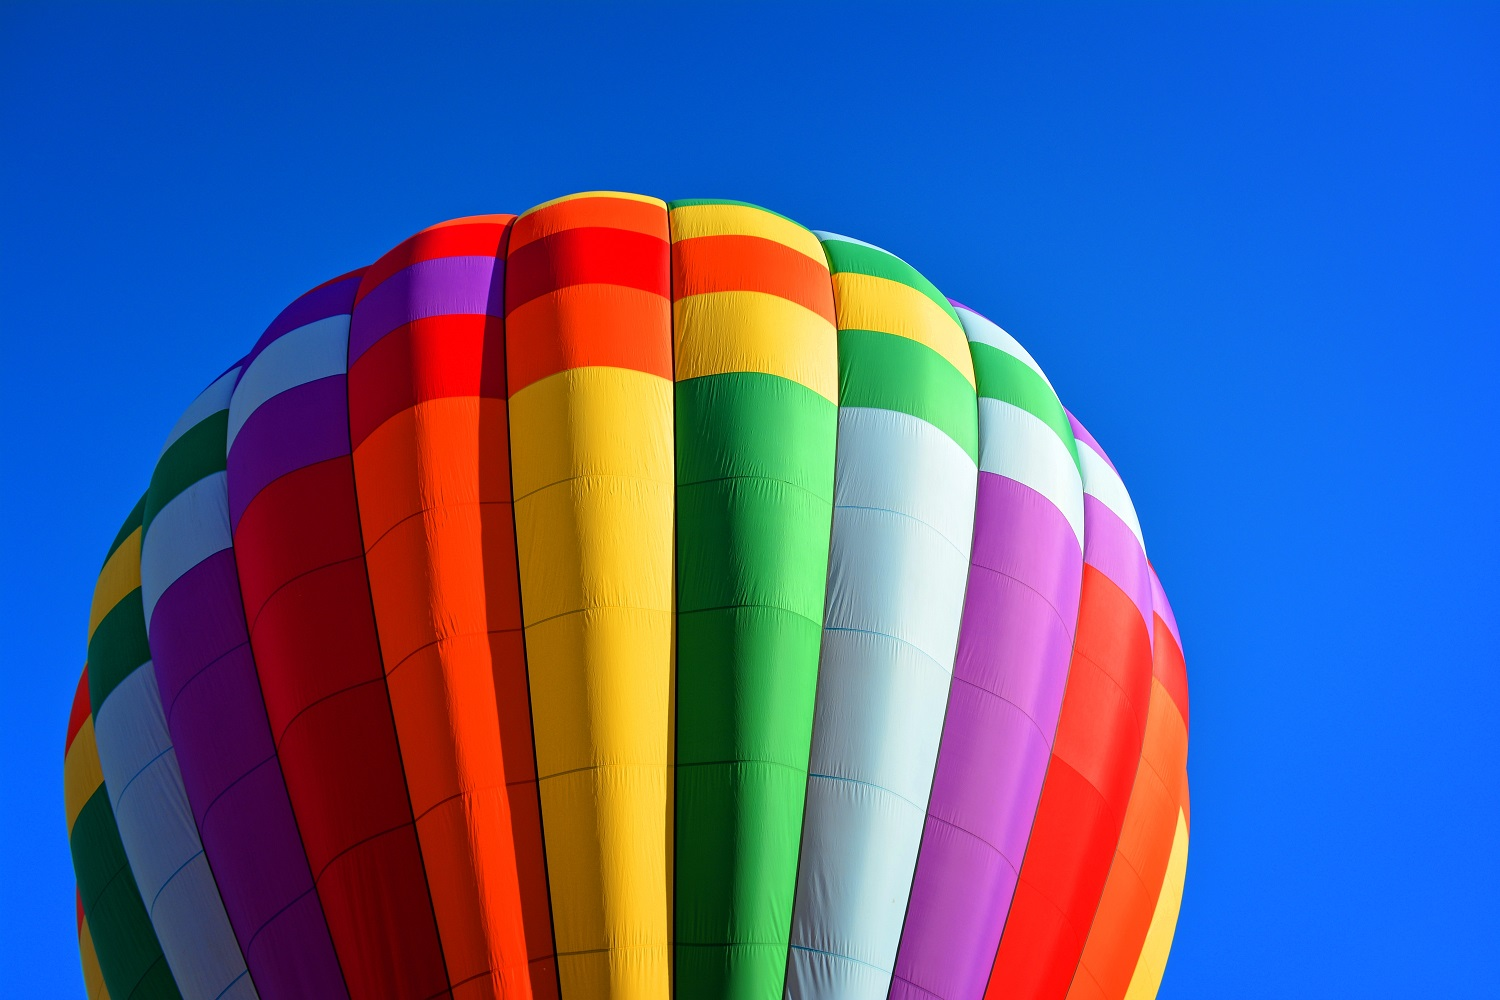 Closeup of a rainbow colored hot air balloon floating against a clear blue sky.